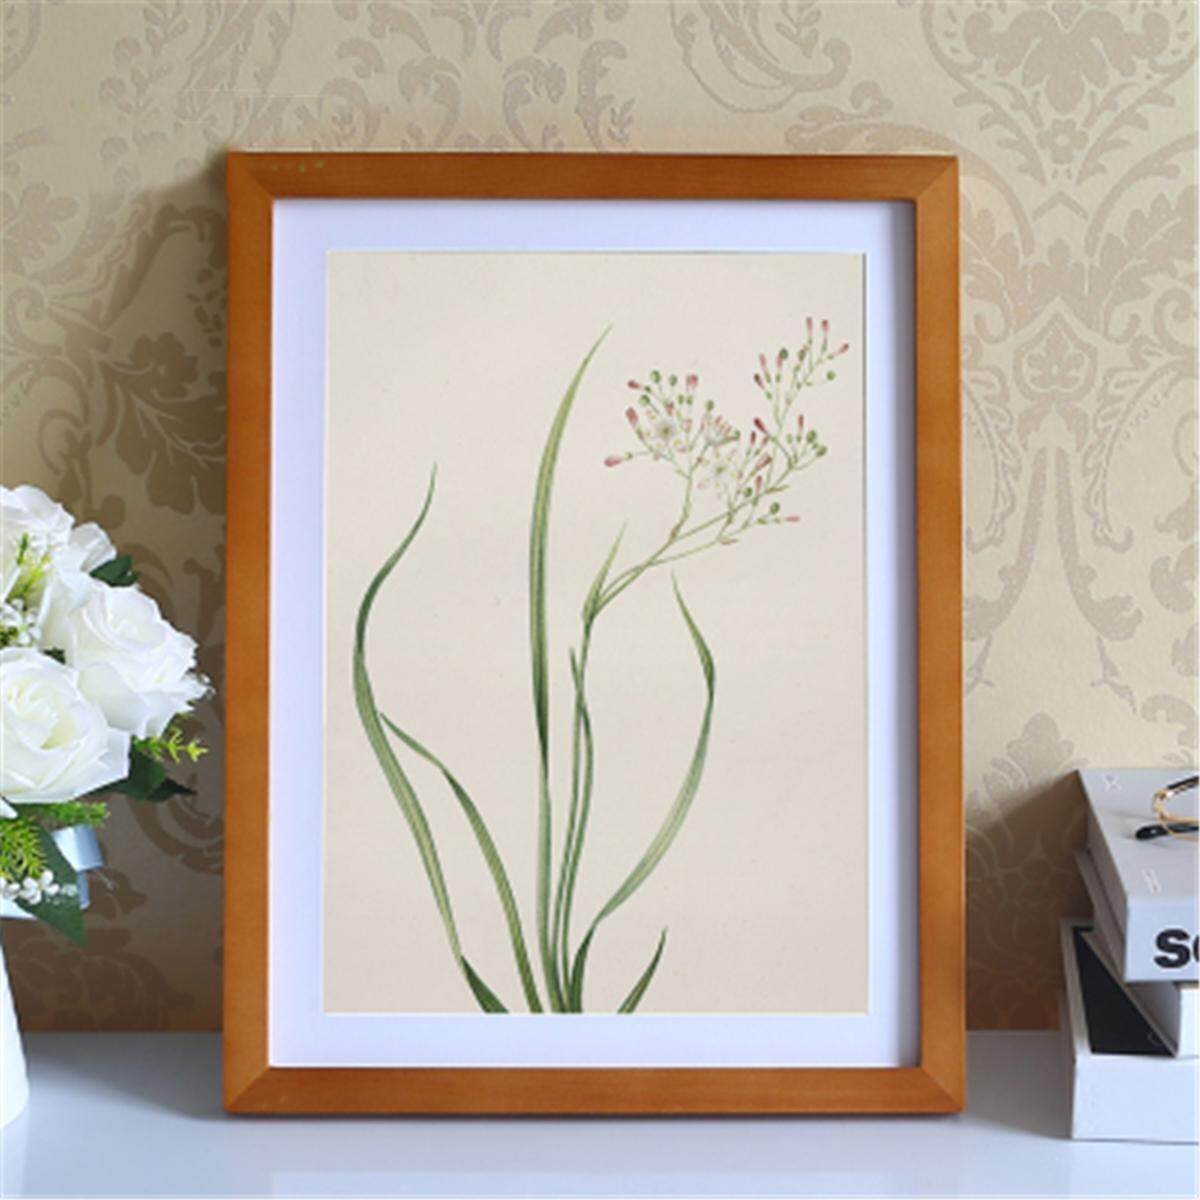 18x24 Inch Wooden Poster Picture Photo Certificate Black Natural Frame Chic DIY